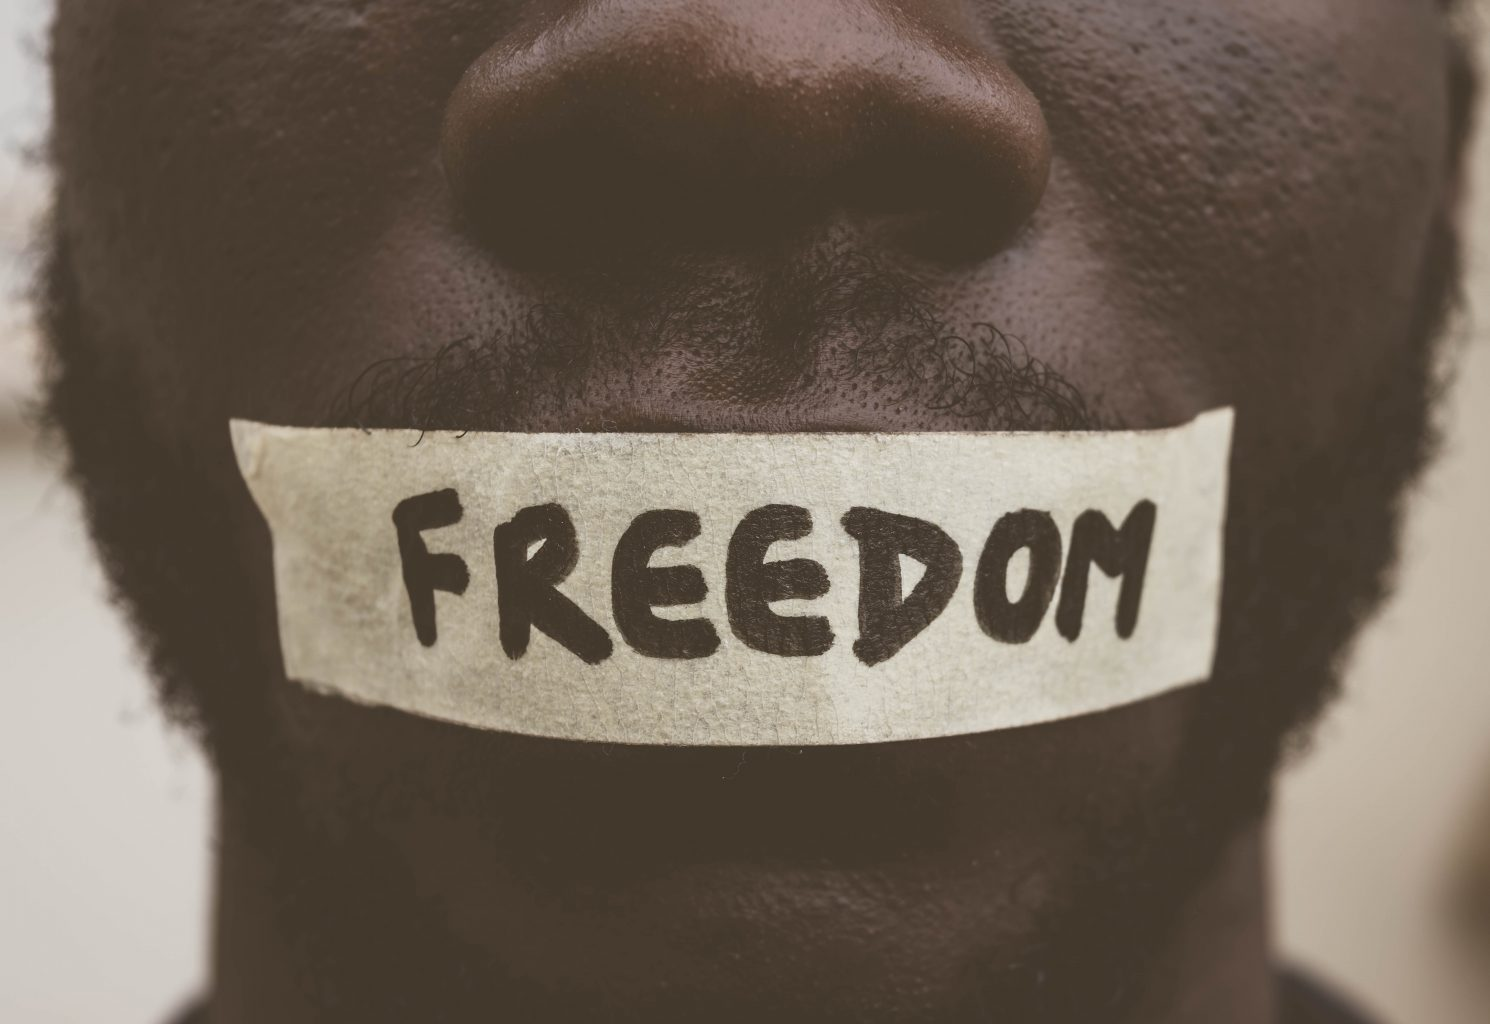 South Africa's Press freedom furore